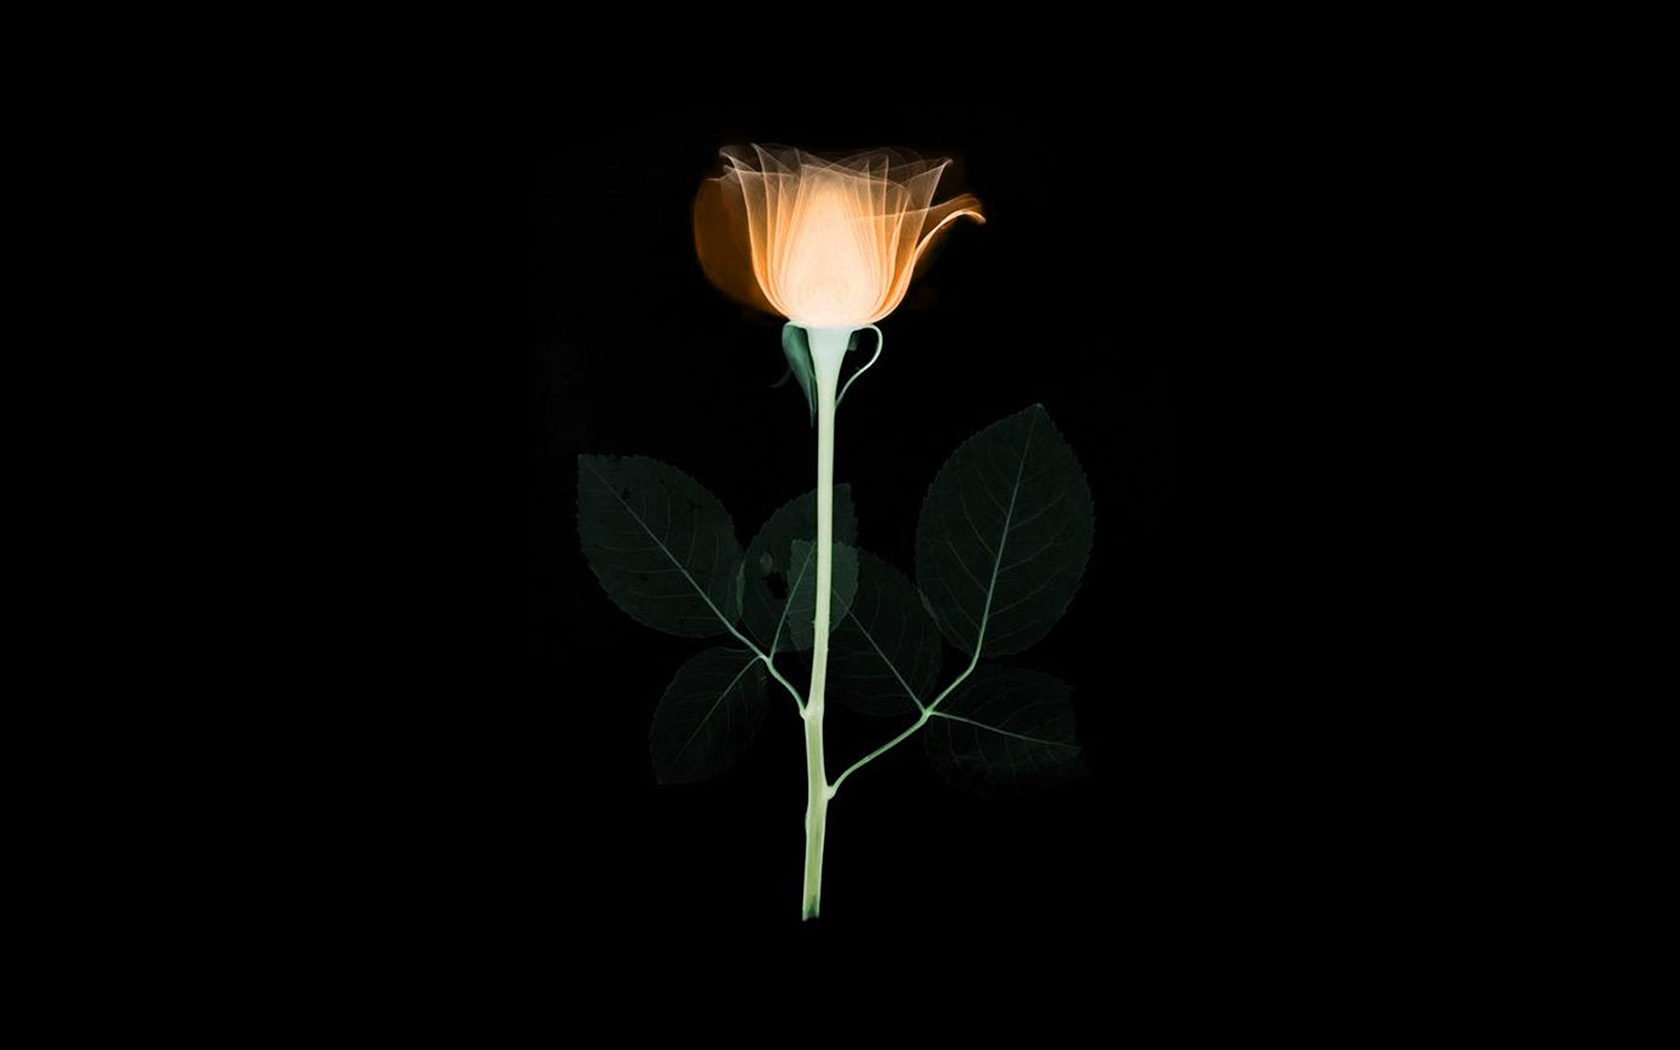 Black Wallpaper For Iphone 7 Wallpaper For Desktop Laptop At75 Flower Xray Simple